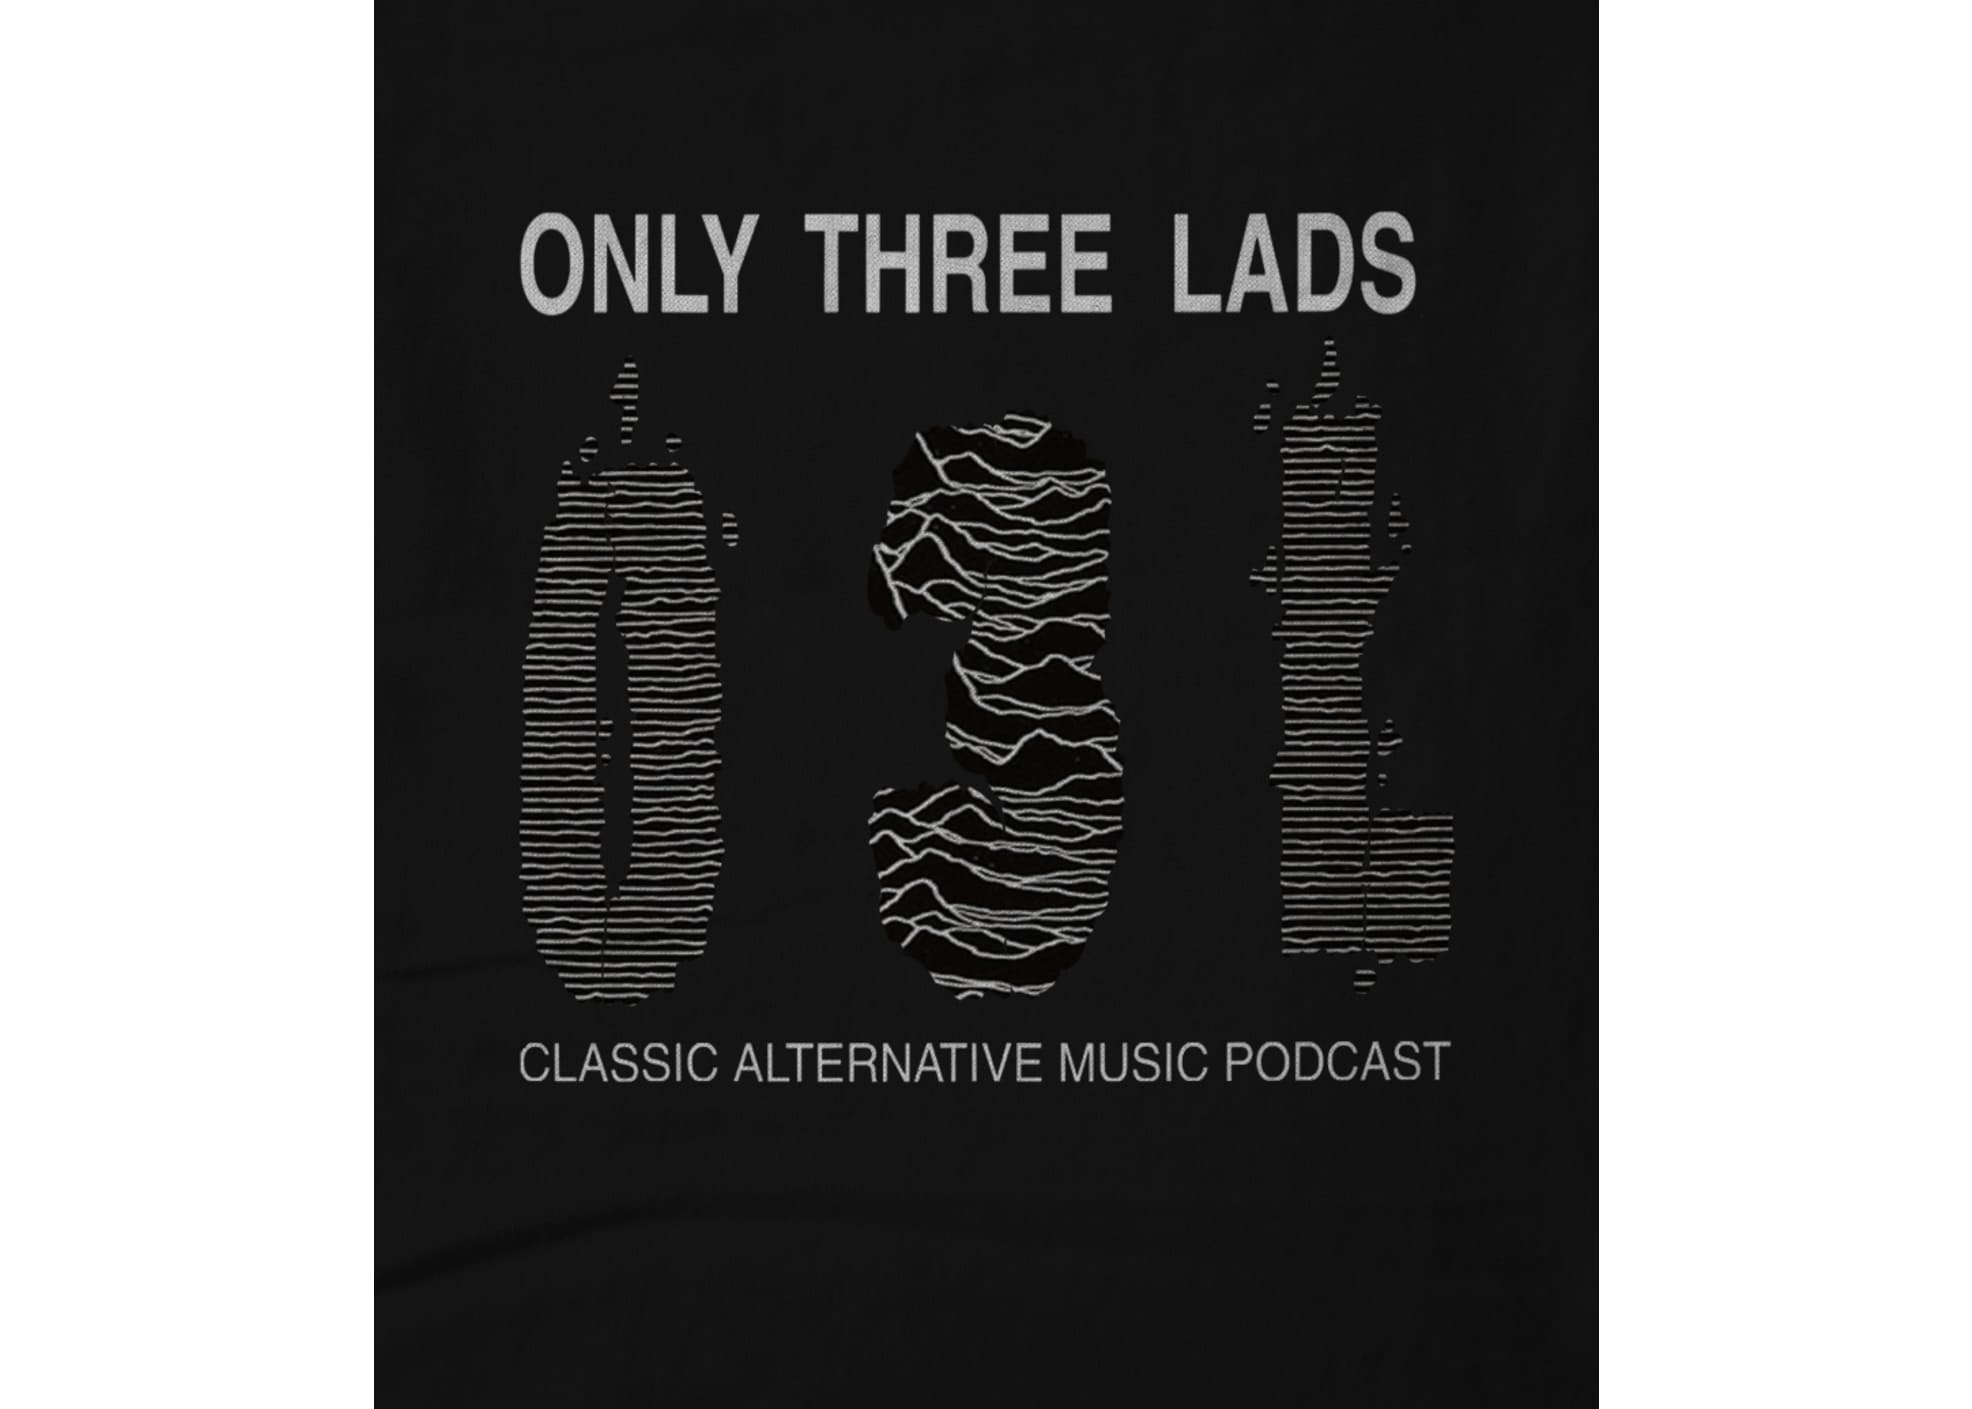 Only three lads somewhat known pleasures 1621387598